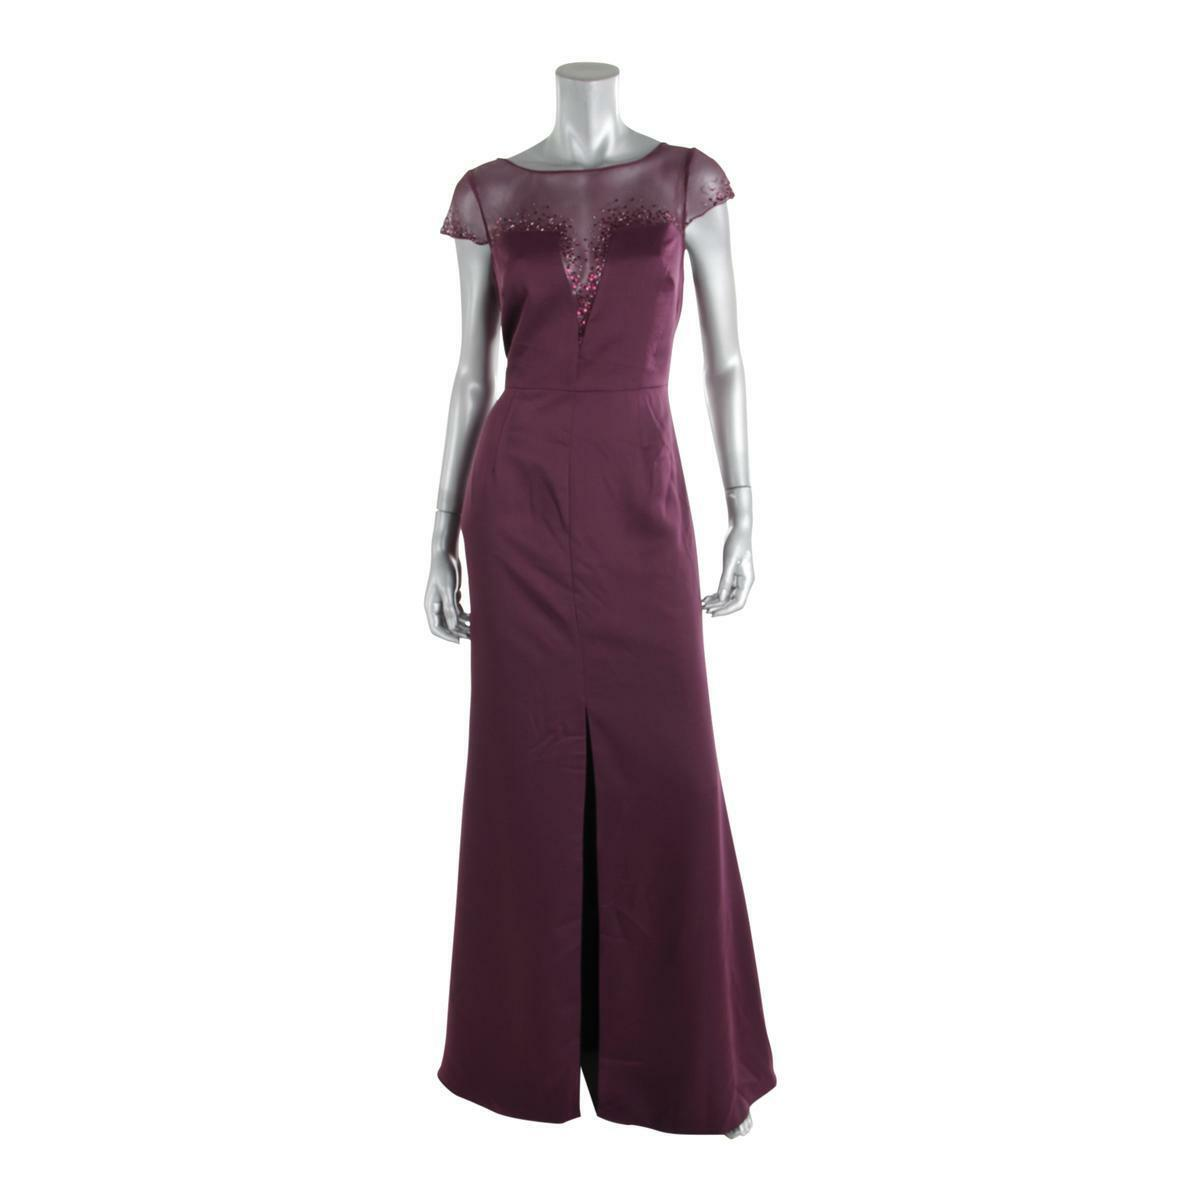 Adrianna Papell New Womens Purple Embellished Evening Dress Gown 10